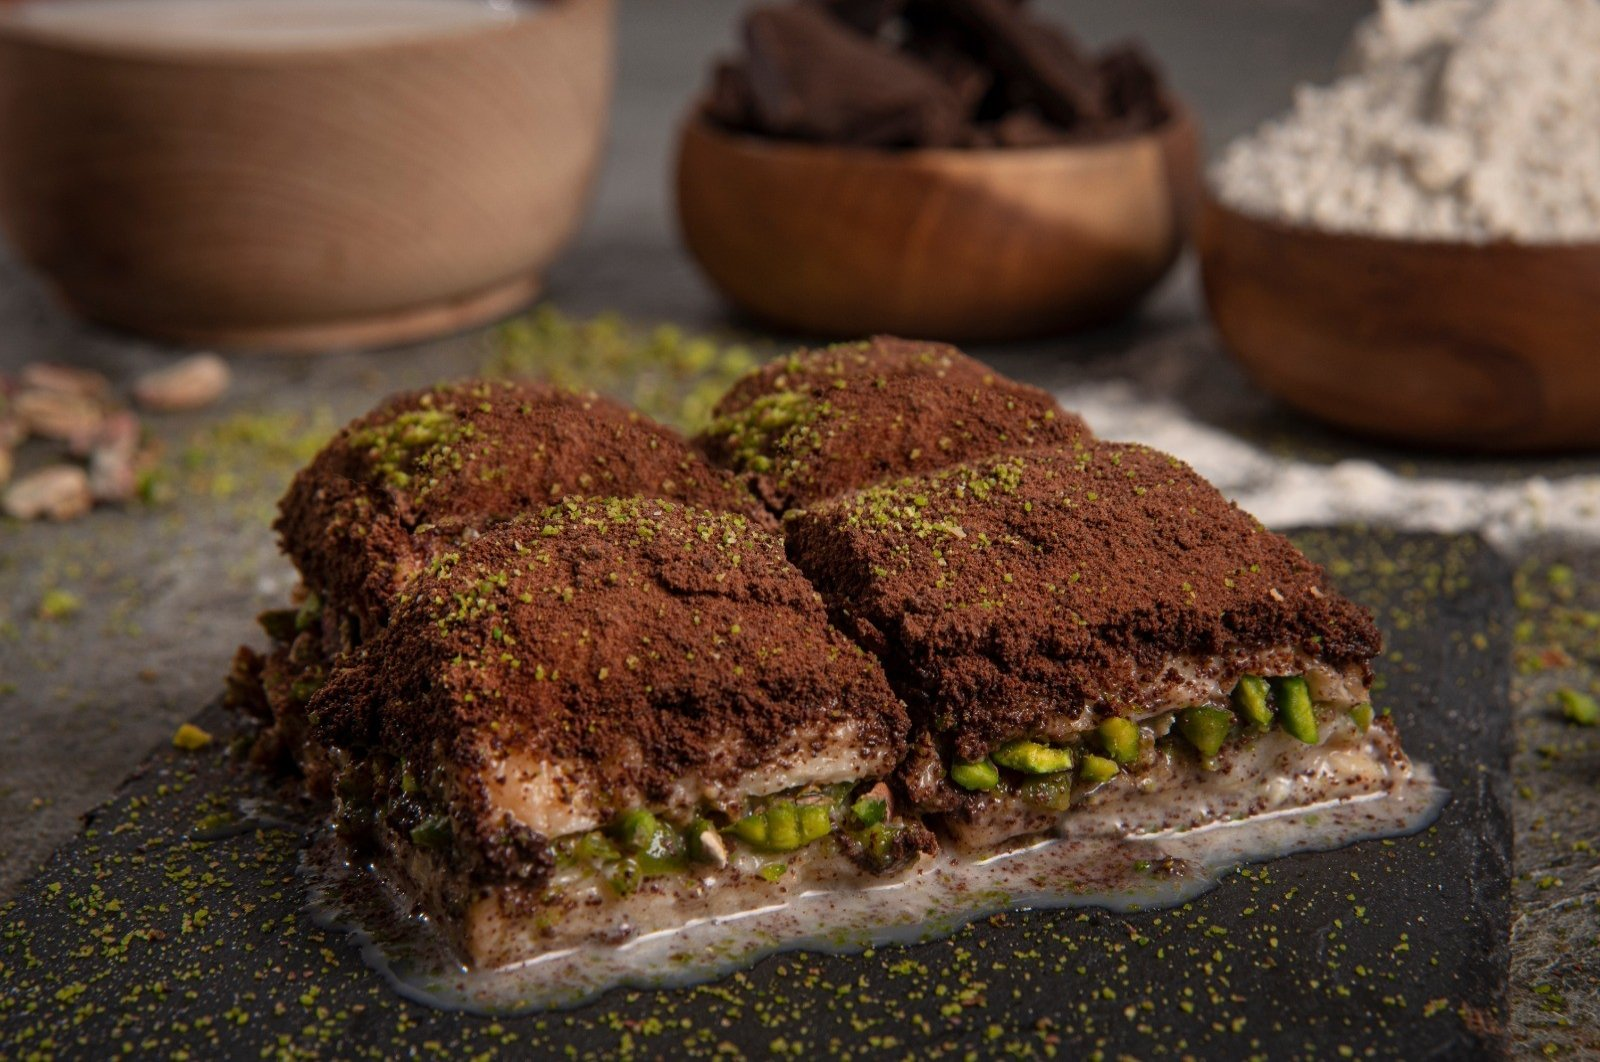 Cold baklava is among the desserts that have seen sales skyrocket on the eve of Qurban Bayram. (IHA Photo)